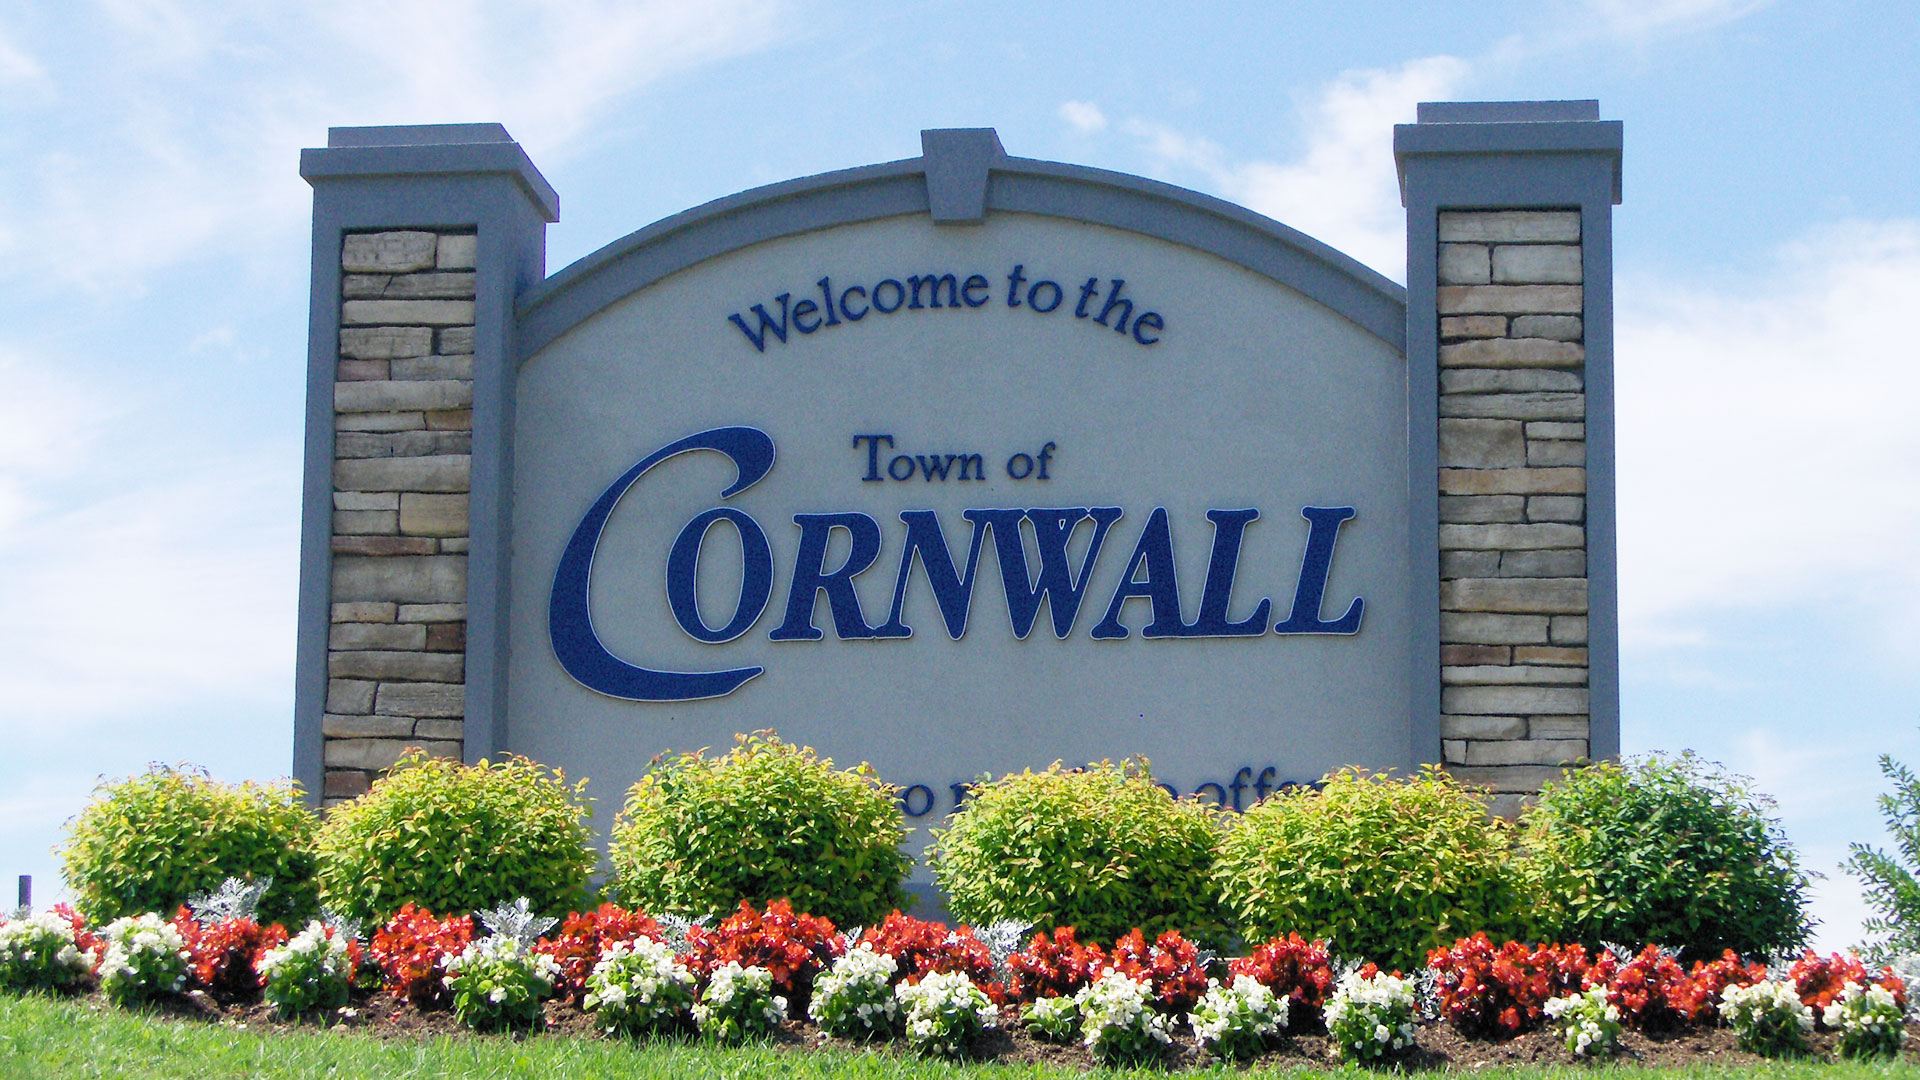 Town of Cornwall sign